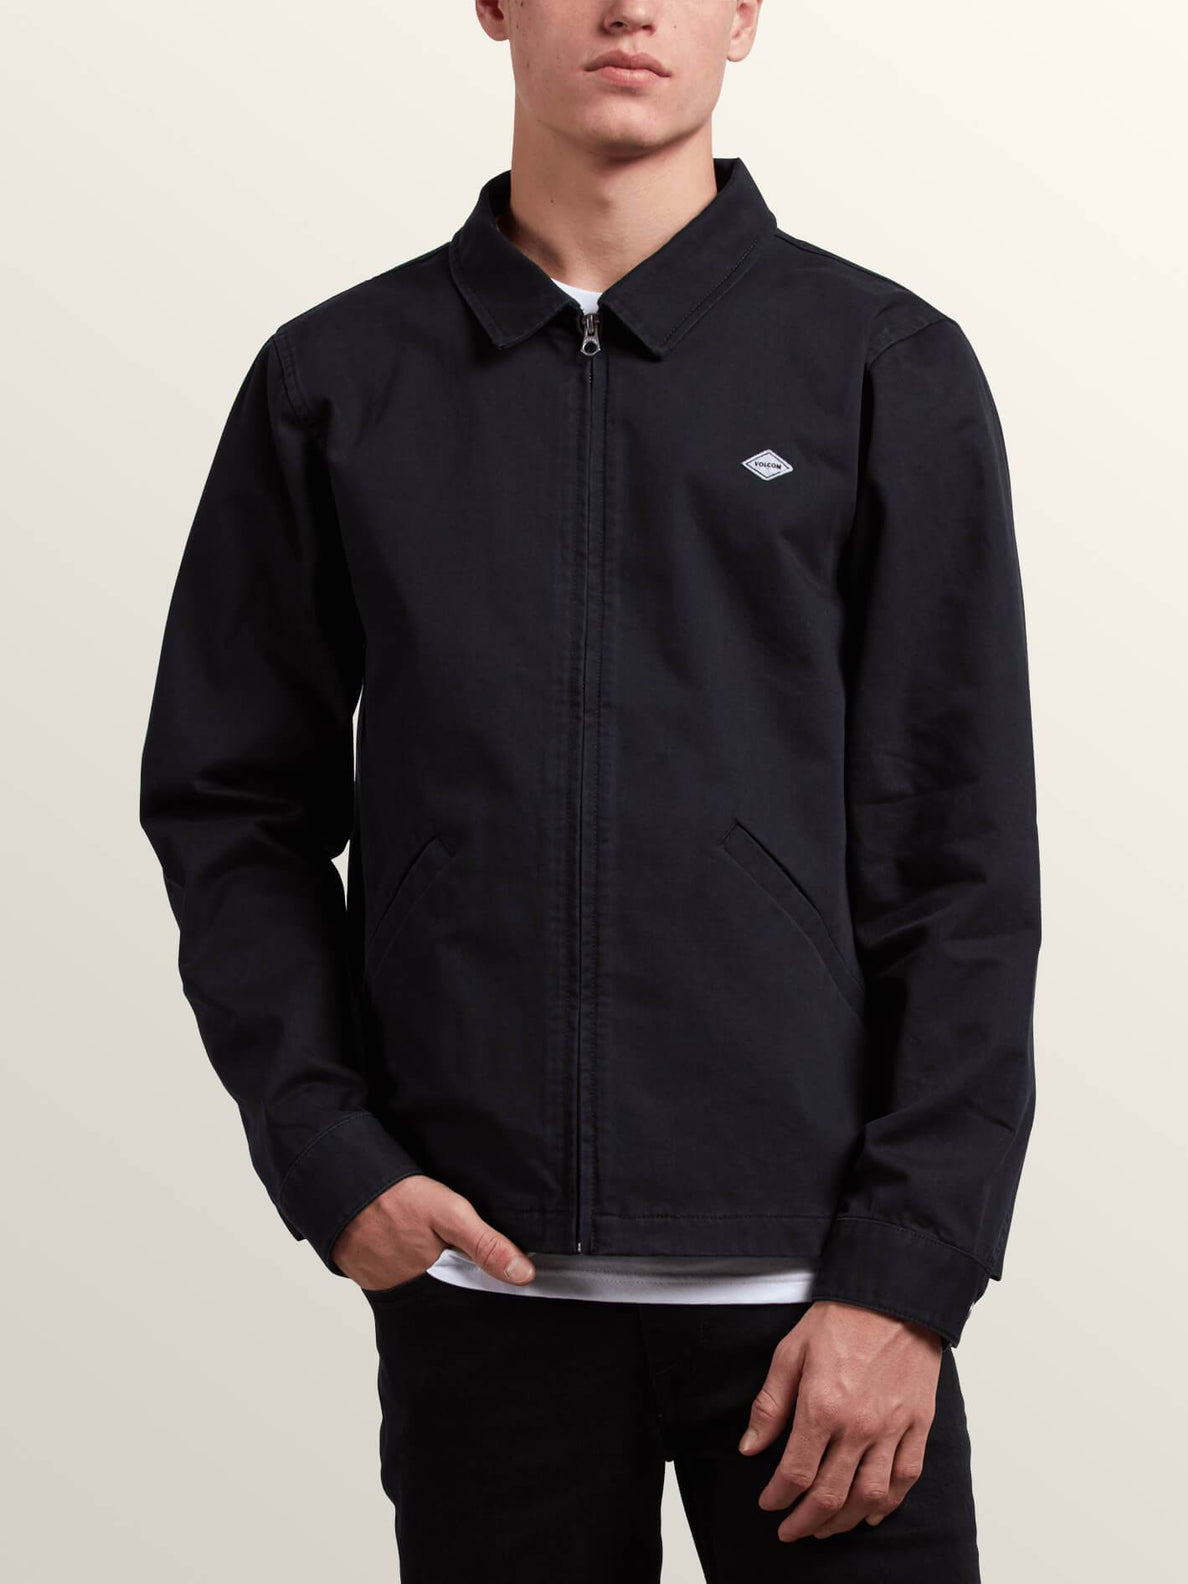 Burkey Jacket In Black, Front View